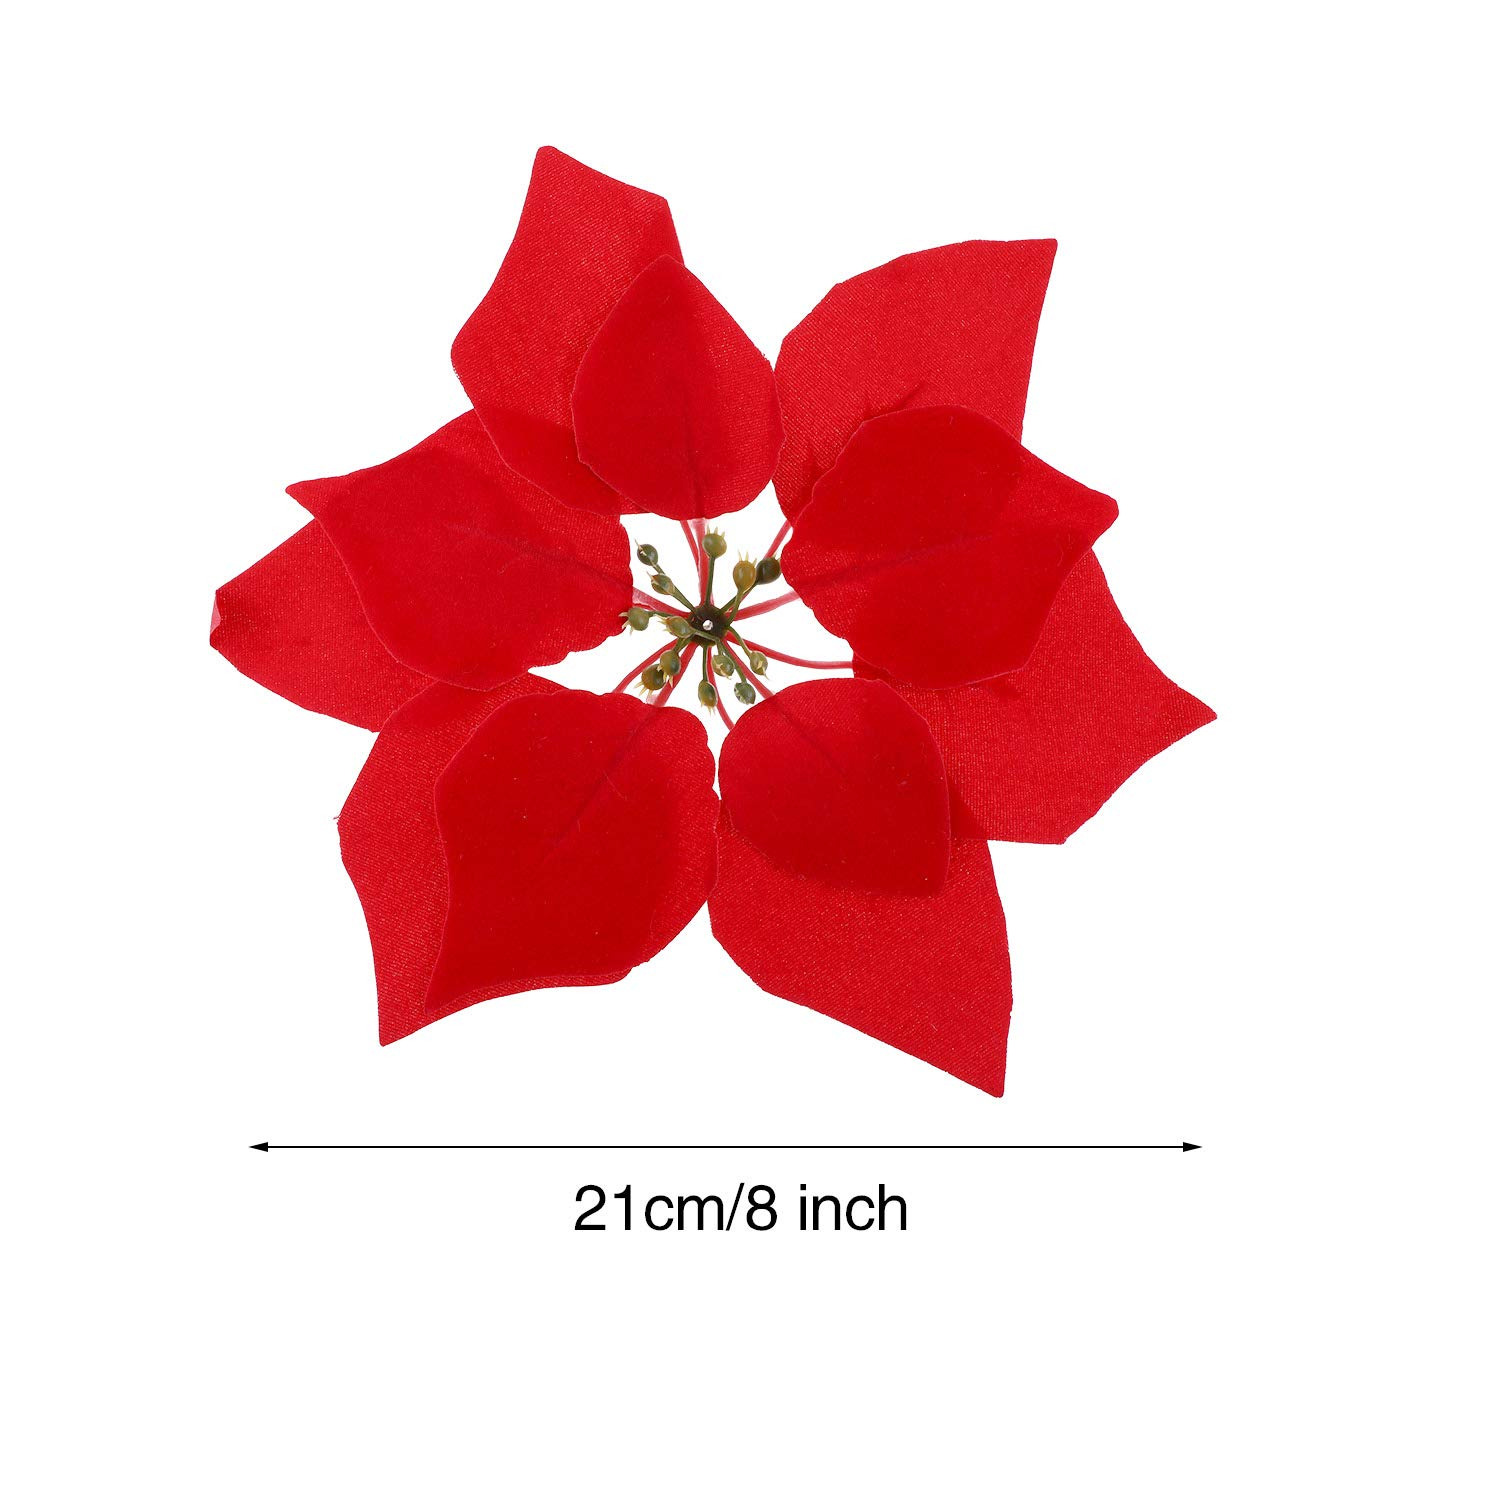 8 Inches Tatuo 28 Pieces Artificial Christmas Flowers Red Poinsettia Tree Wreath Ornaments